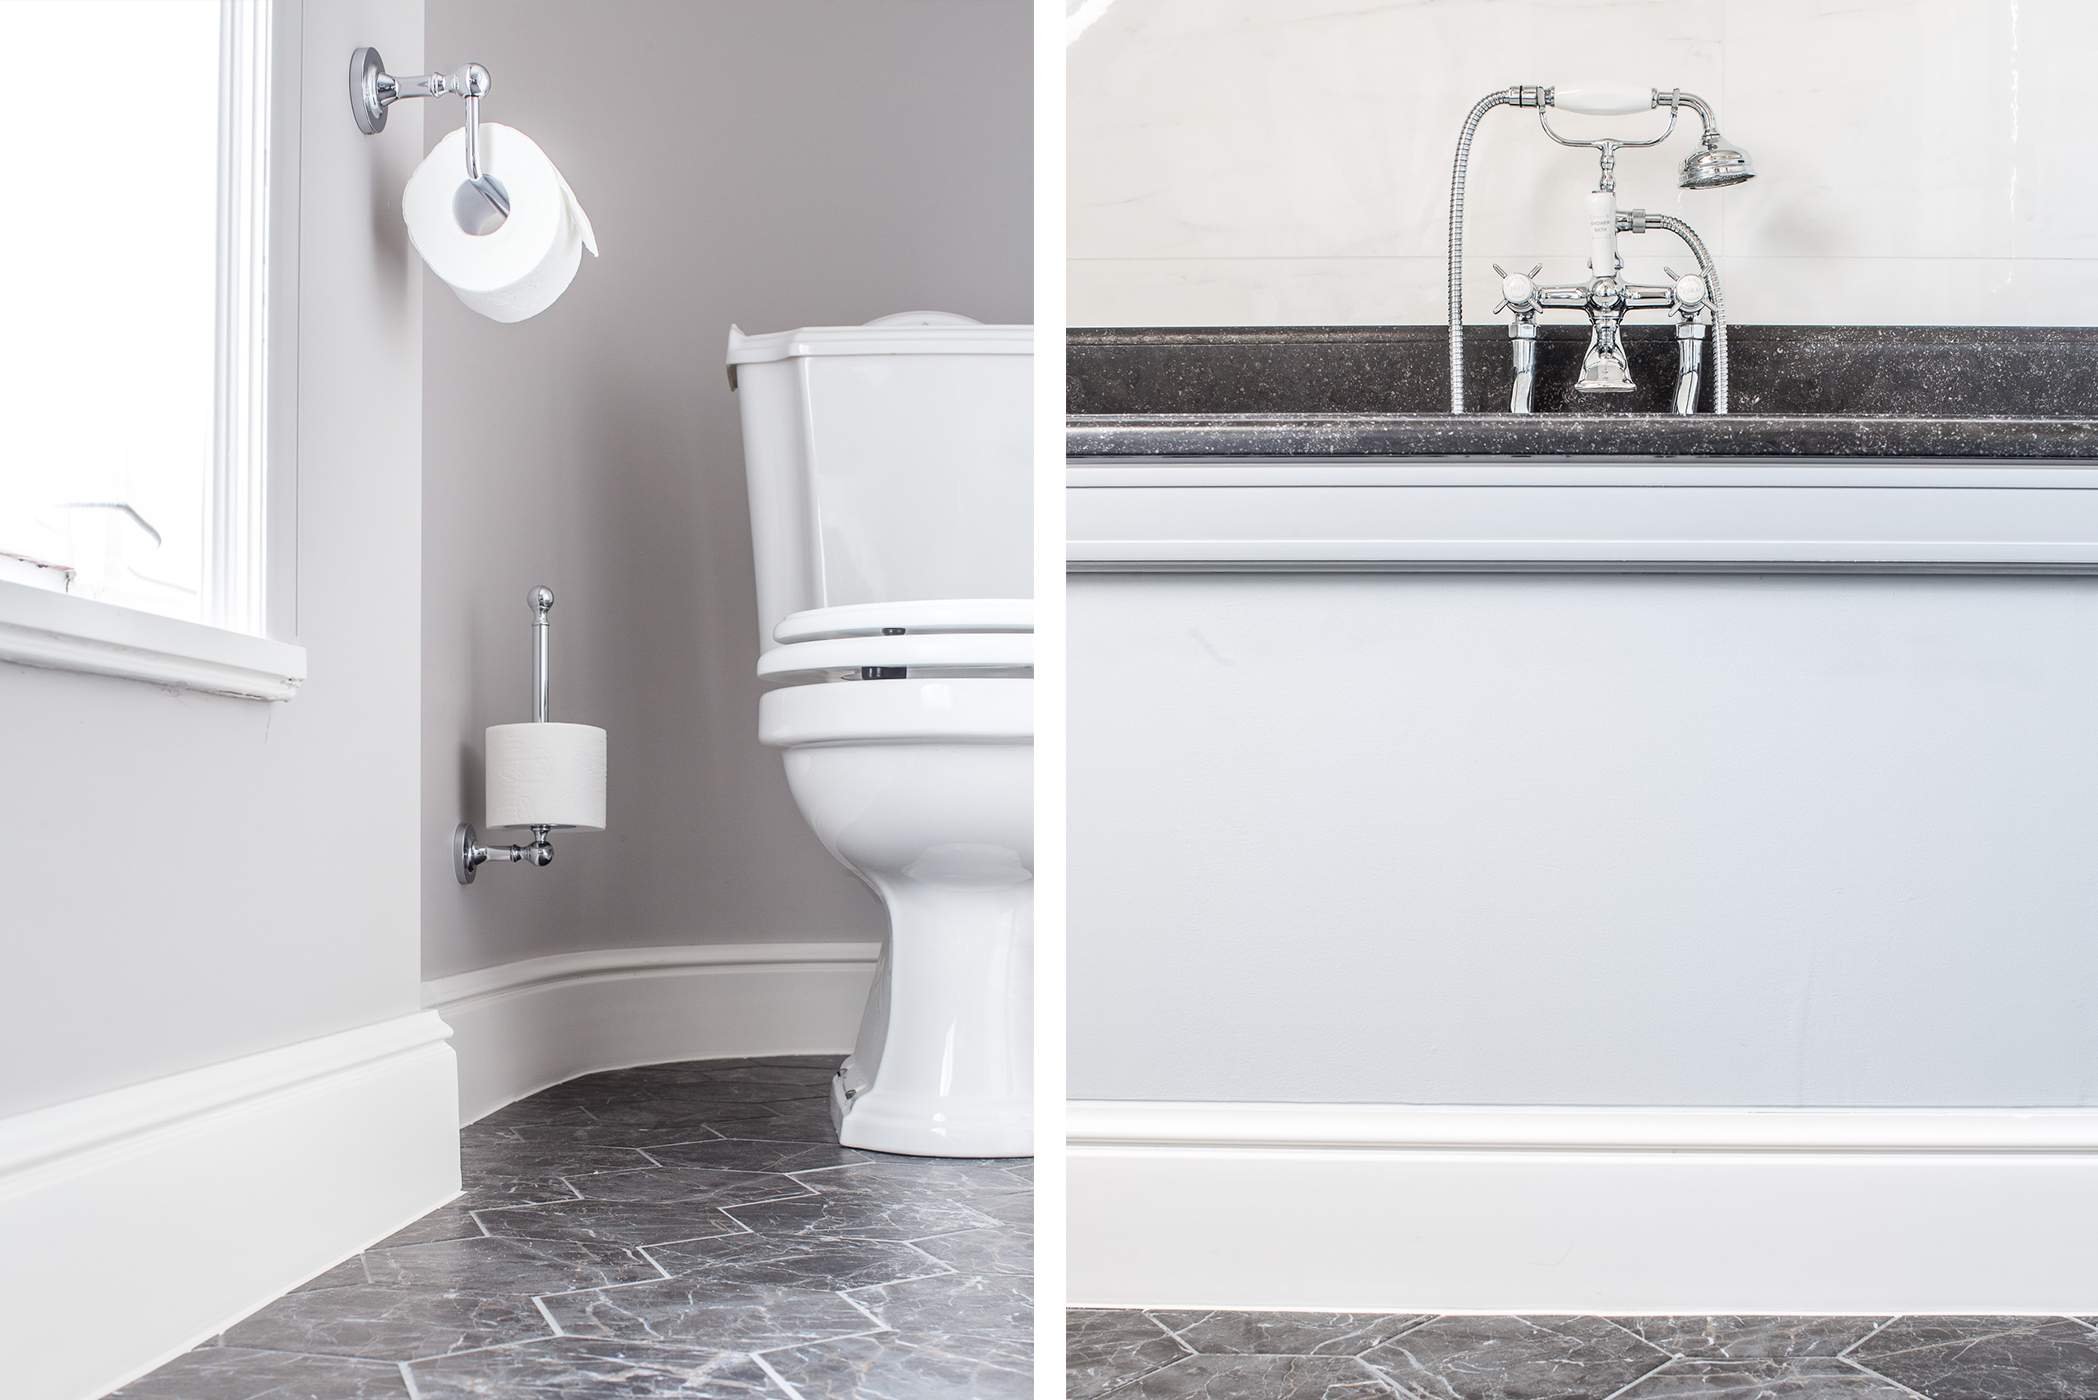 Decorative bathroom skirting